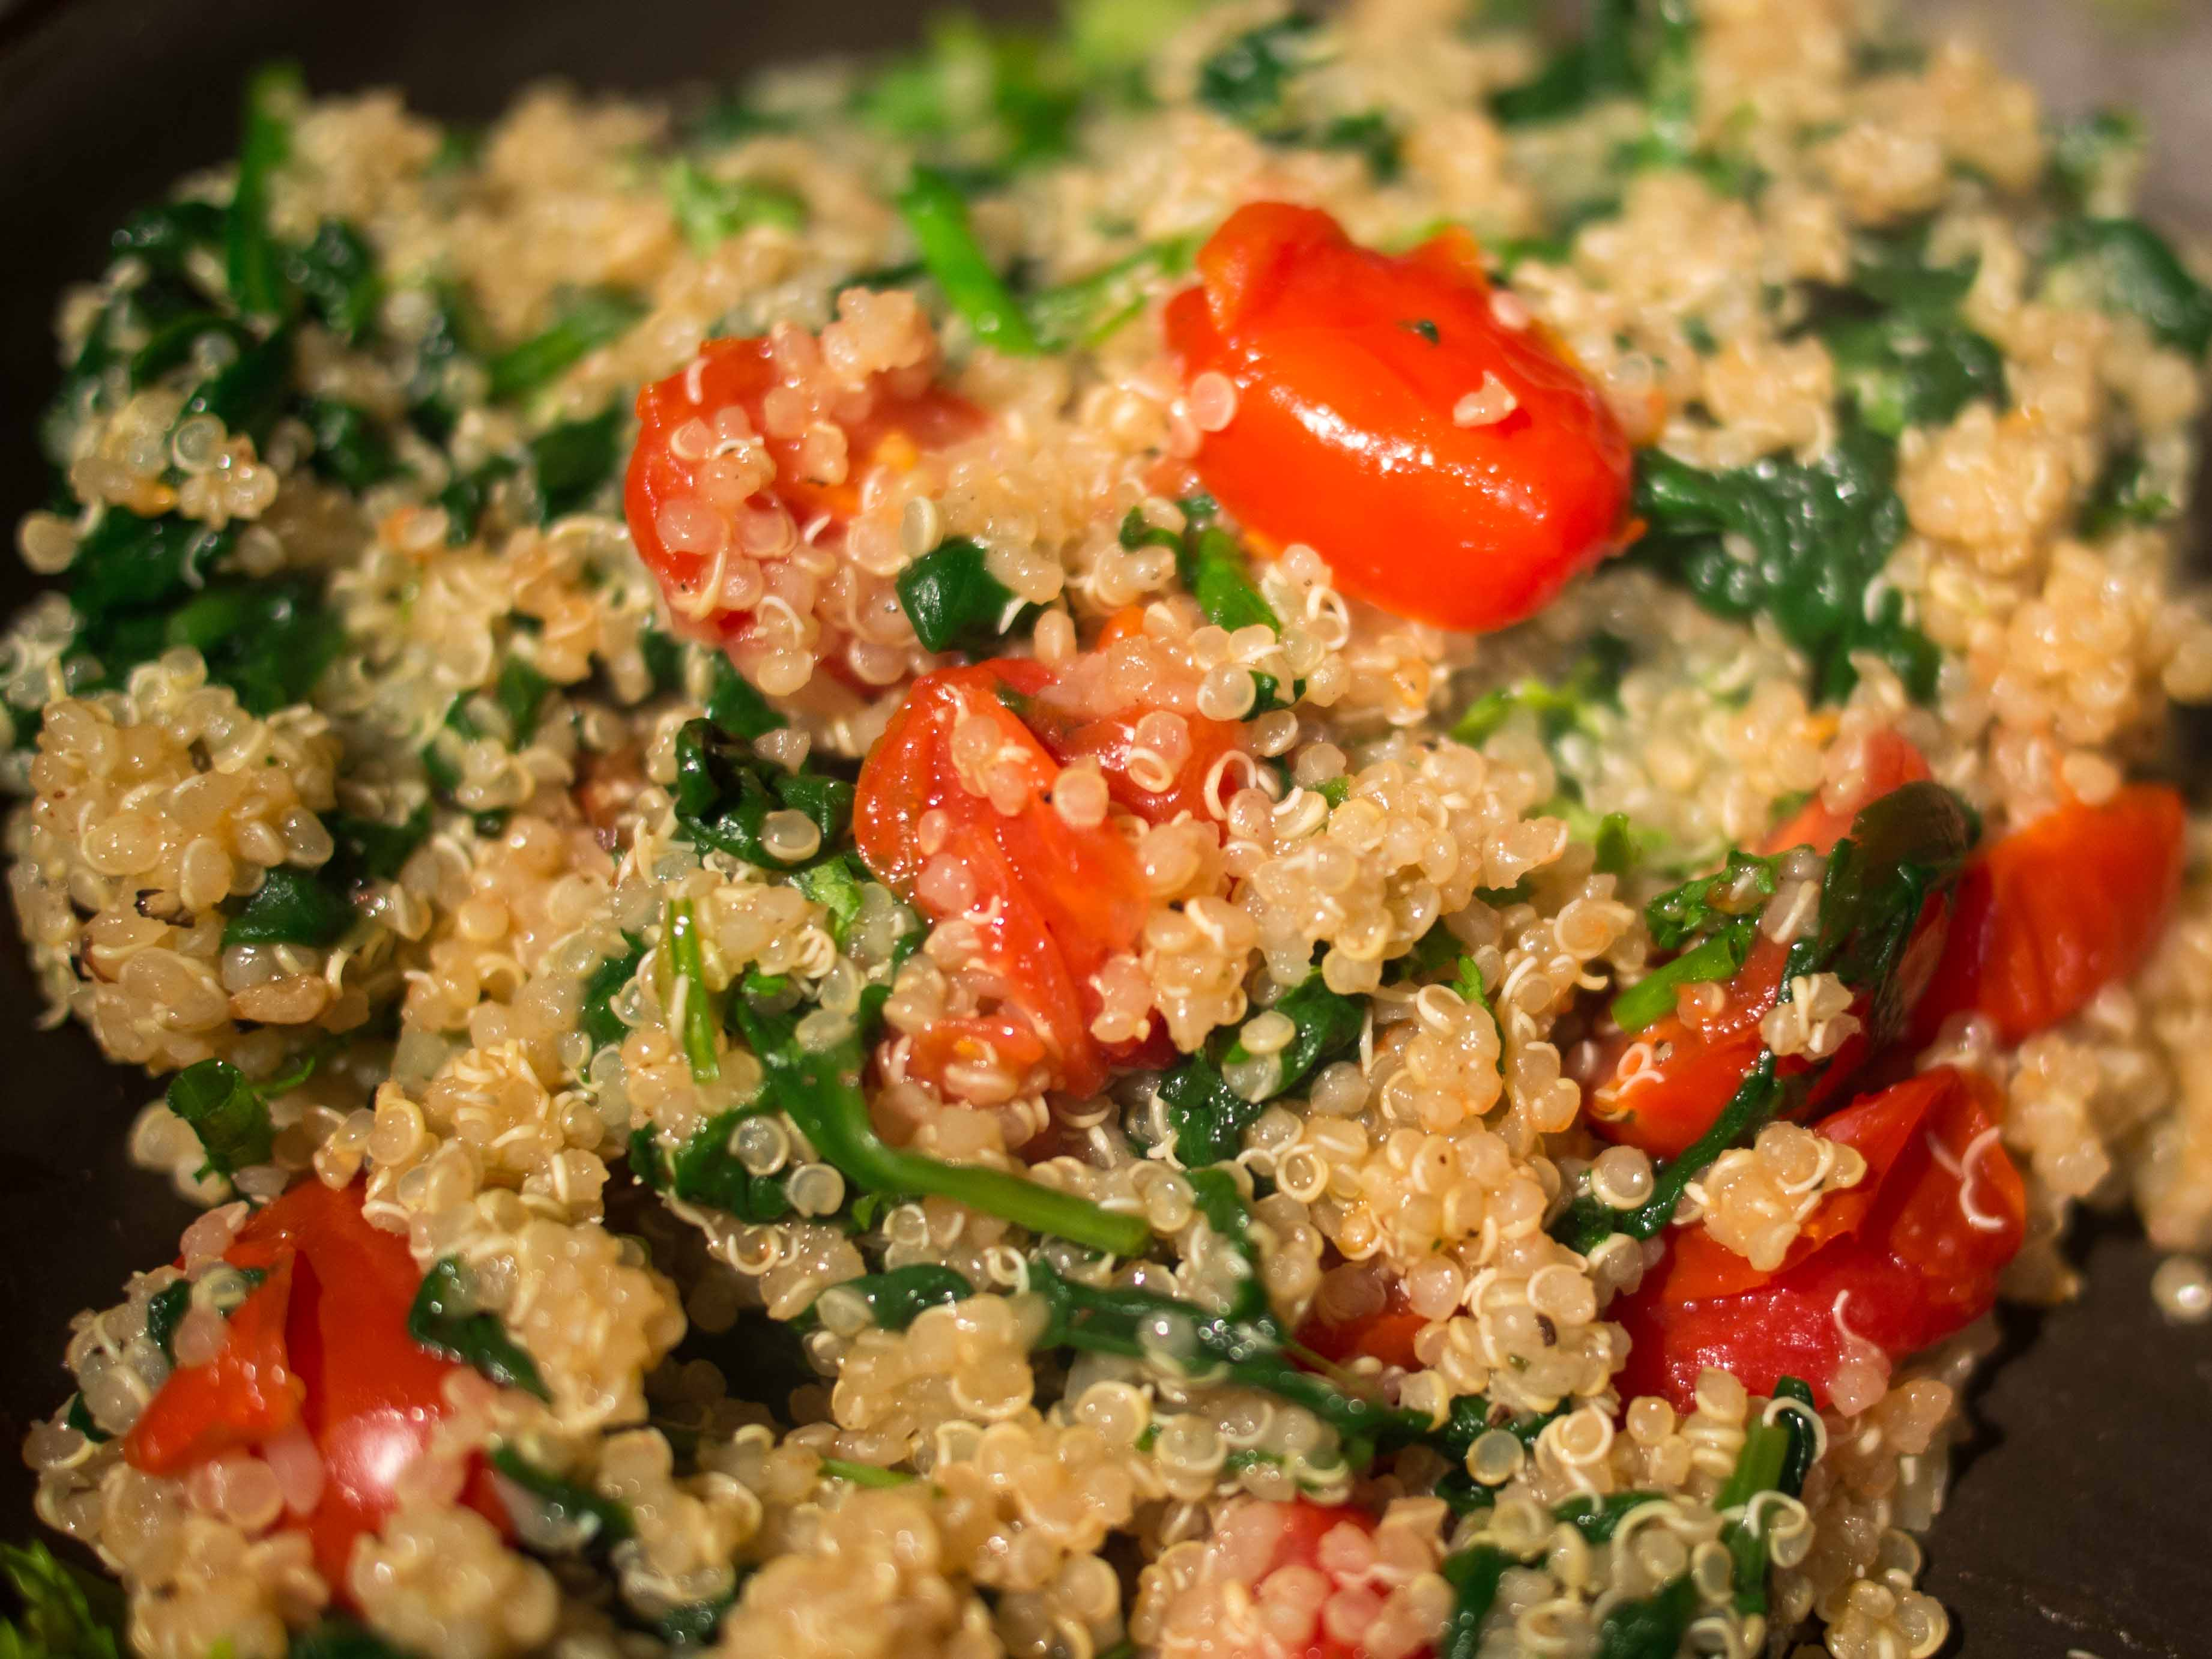 Spinach & Tomato Quinoa Salad - Food & Fire